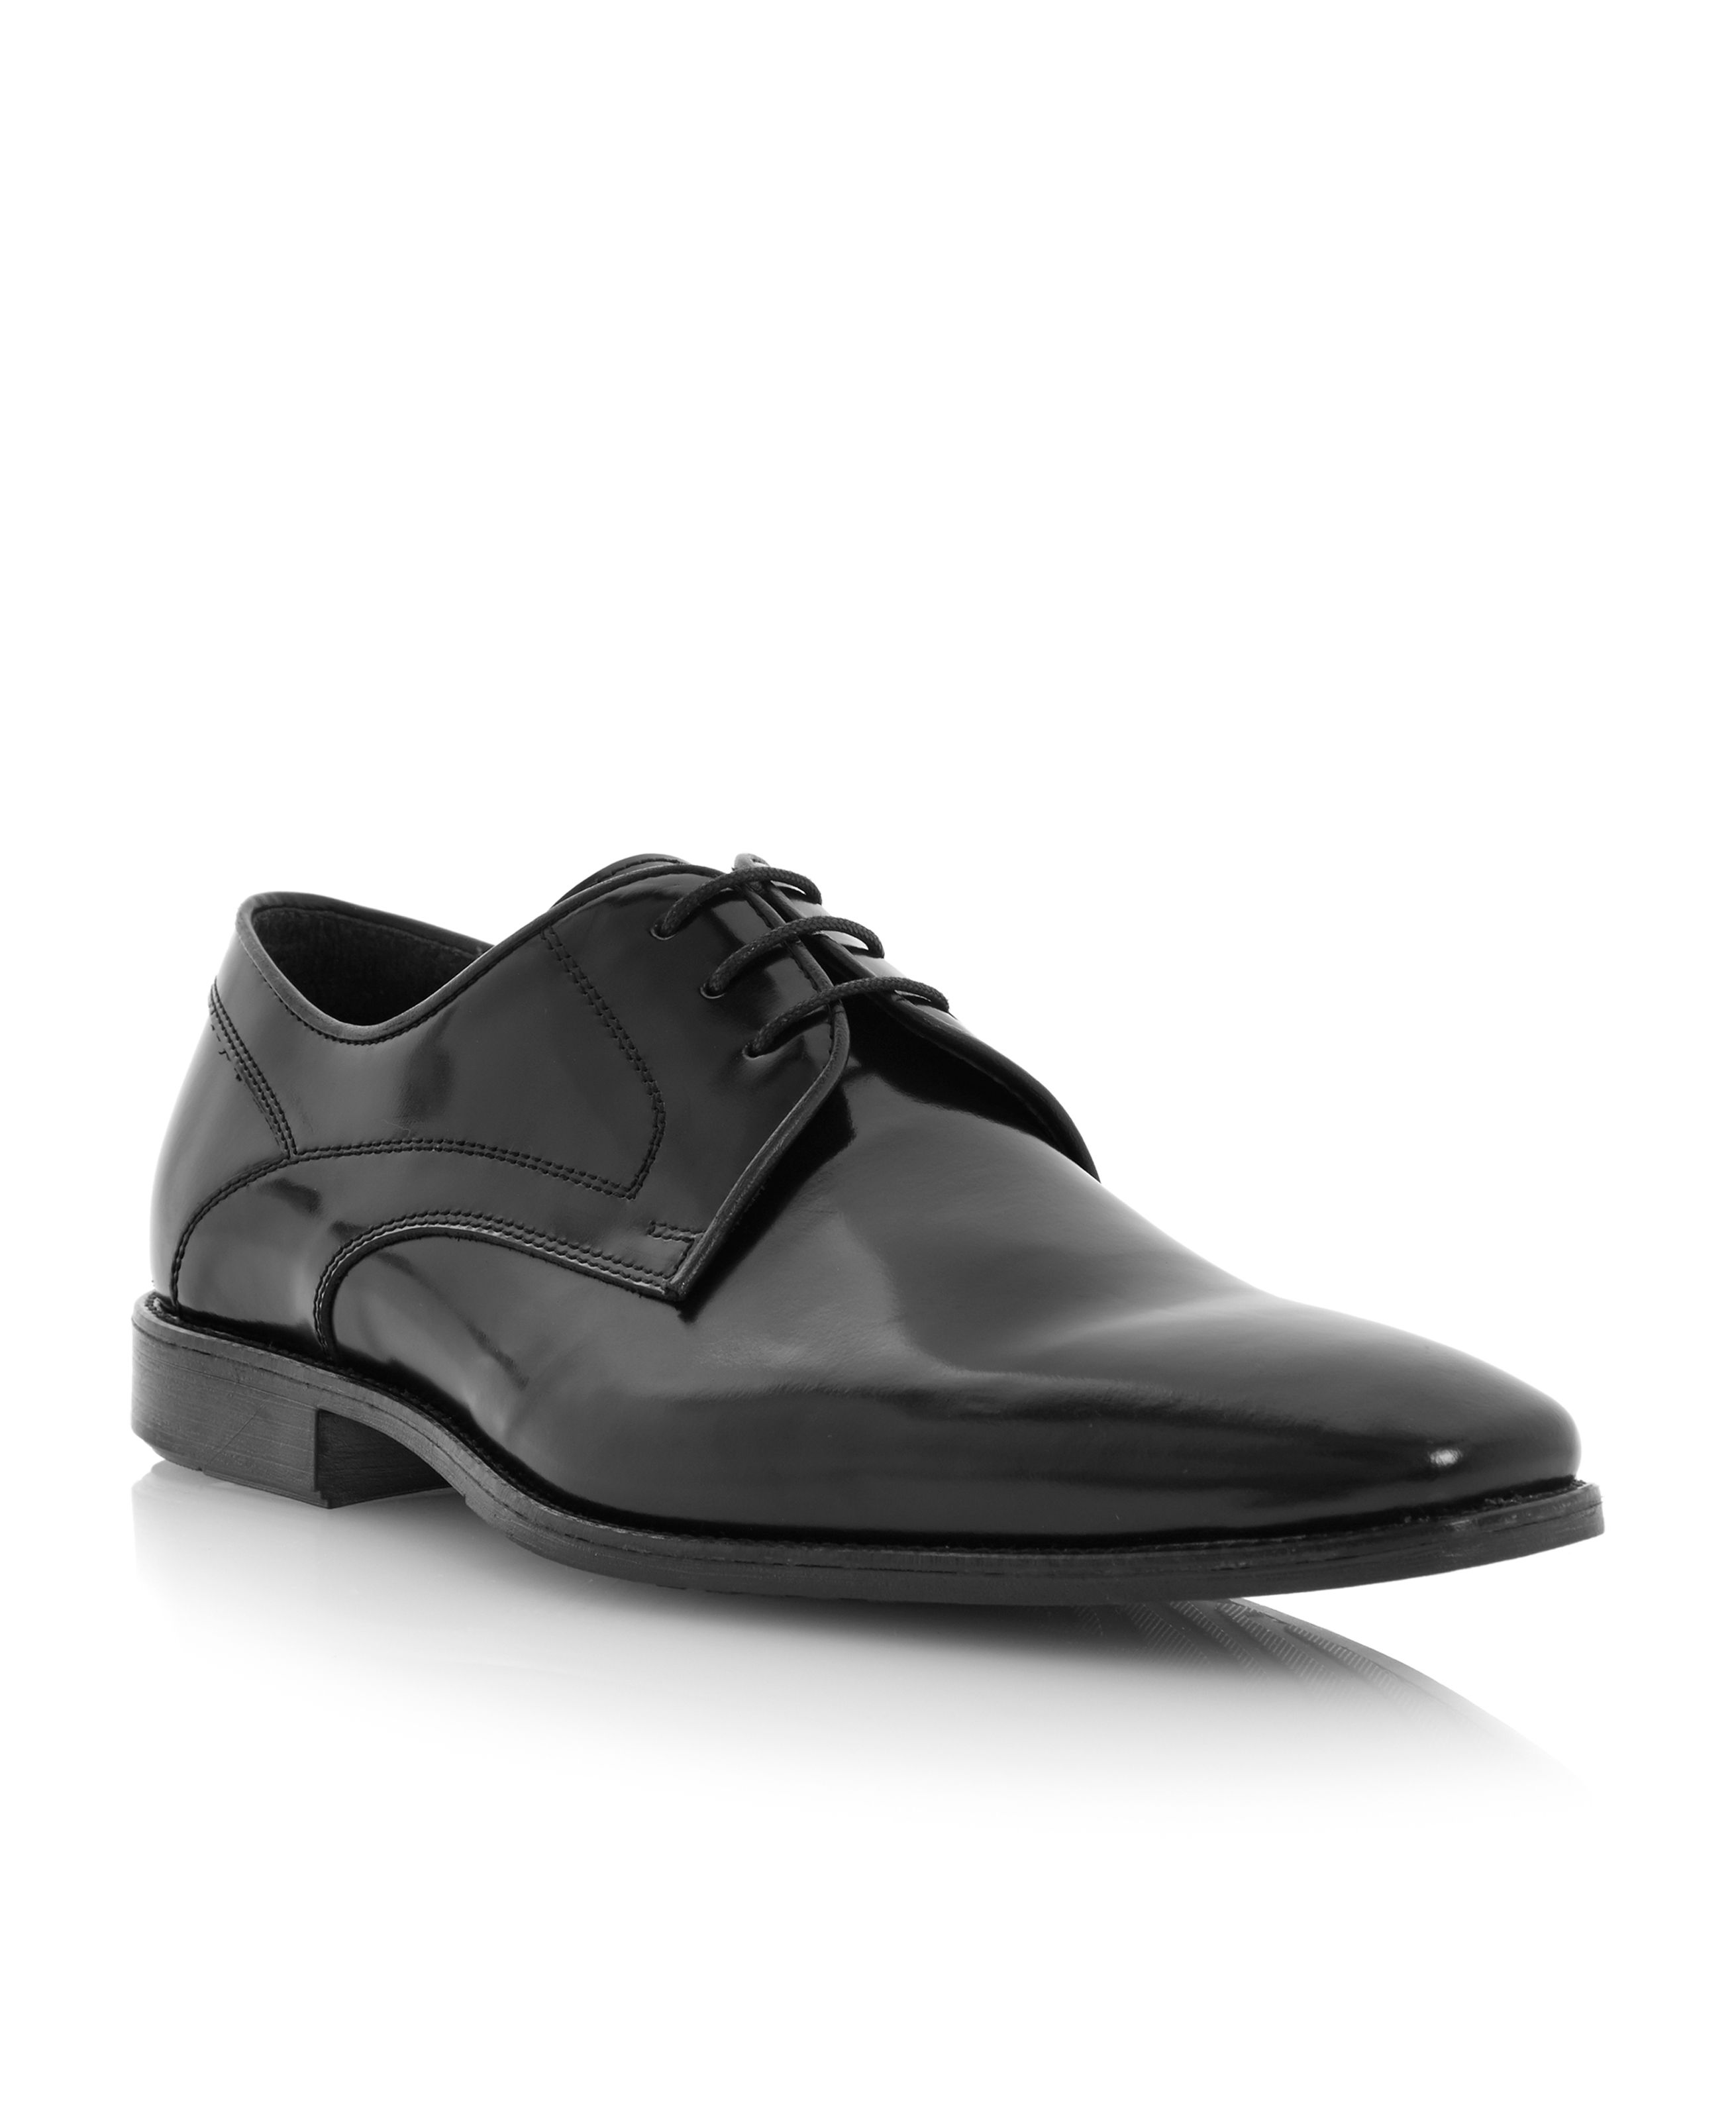 Rochester place lace up chisel gibson shoes